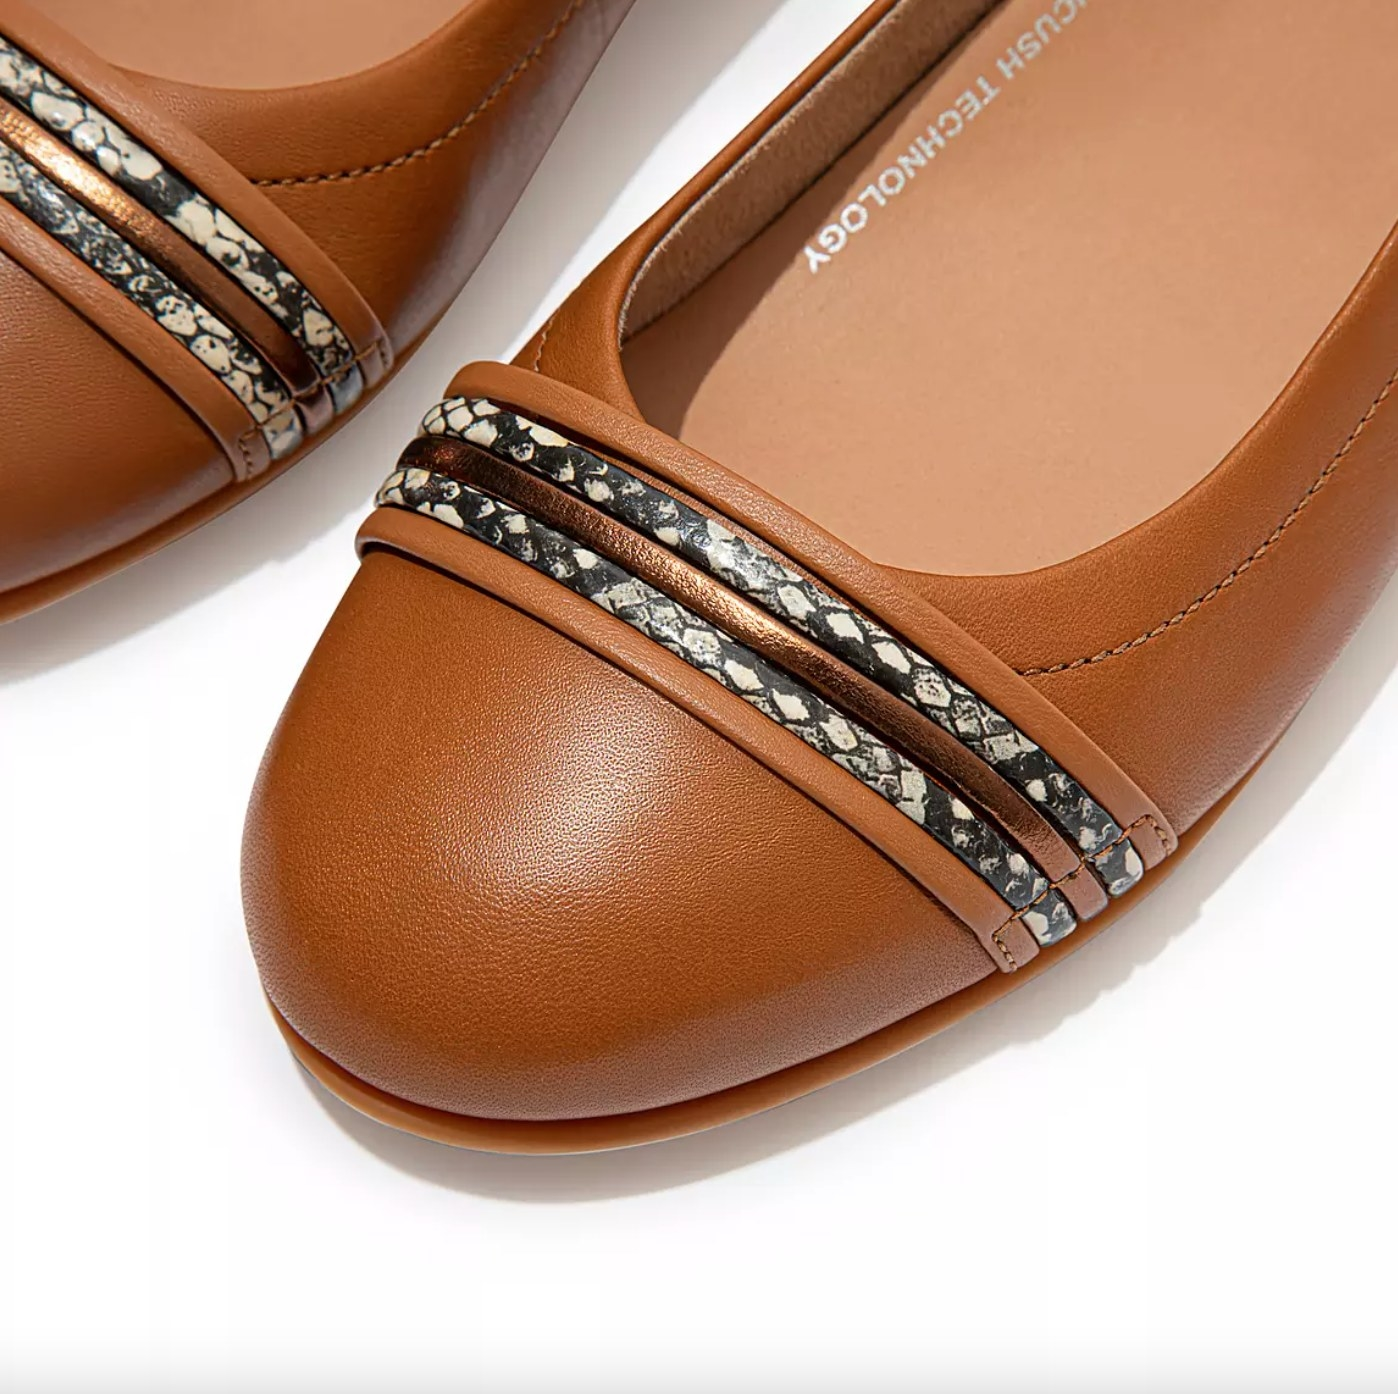 The pair of snake-bangle leather ballet flats in light tan